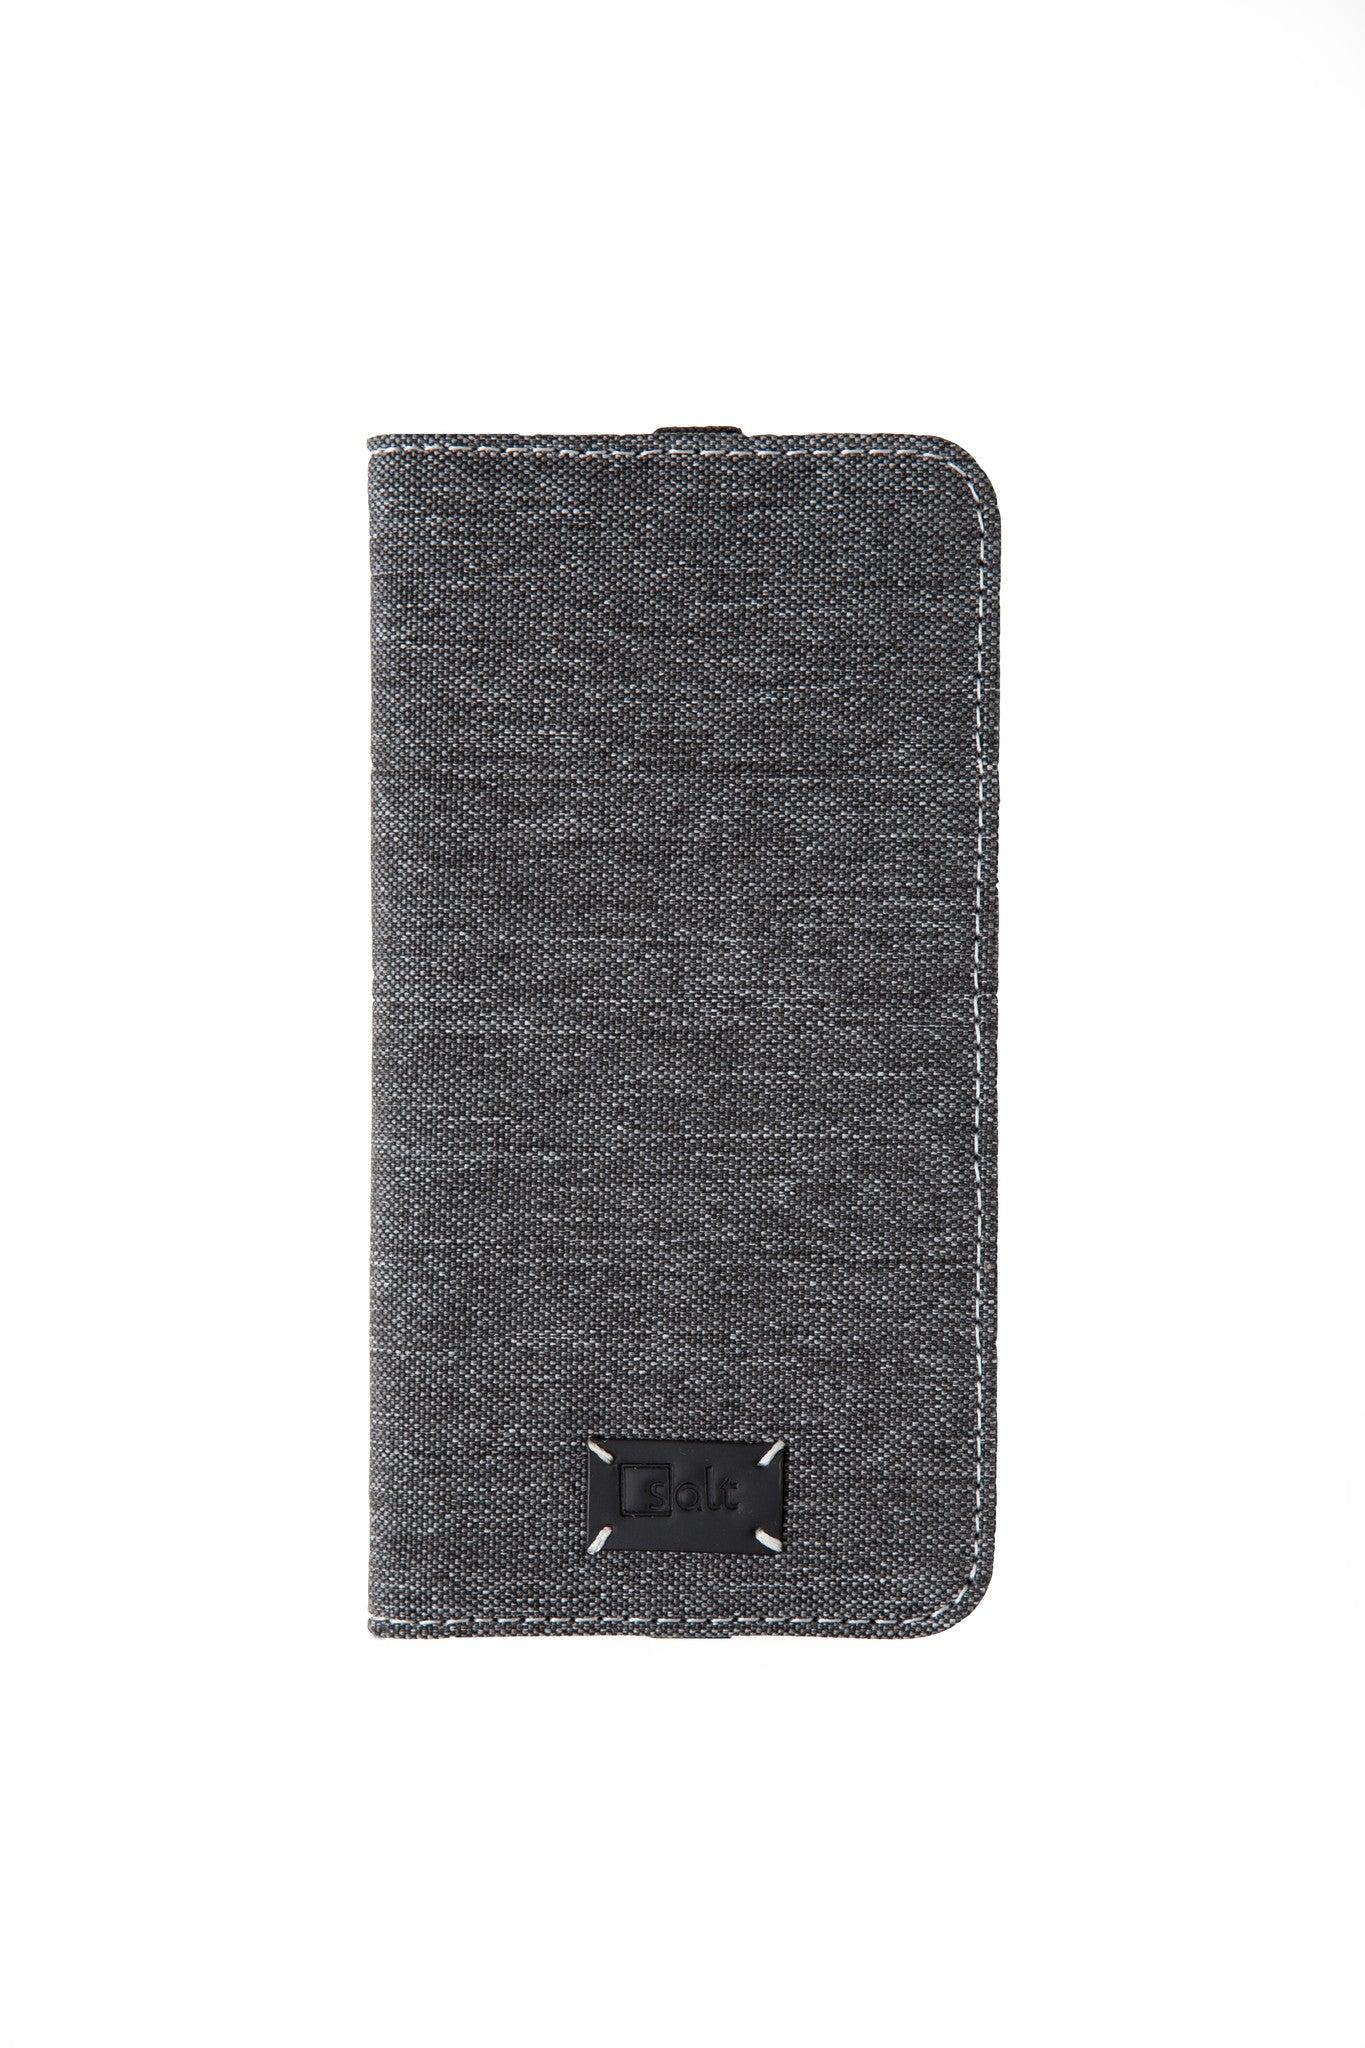 Salt Case for iPhone 7 & 7+